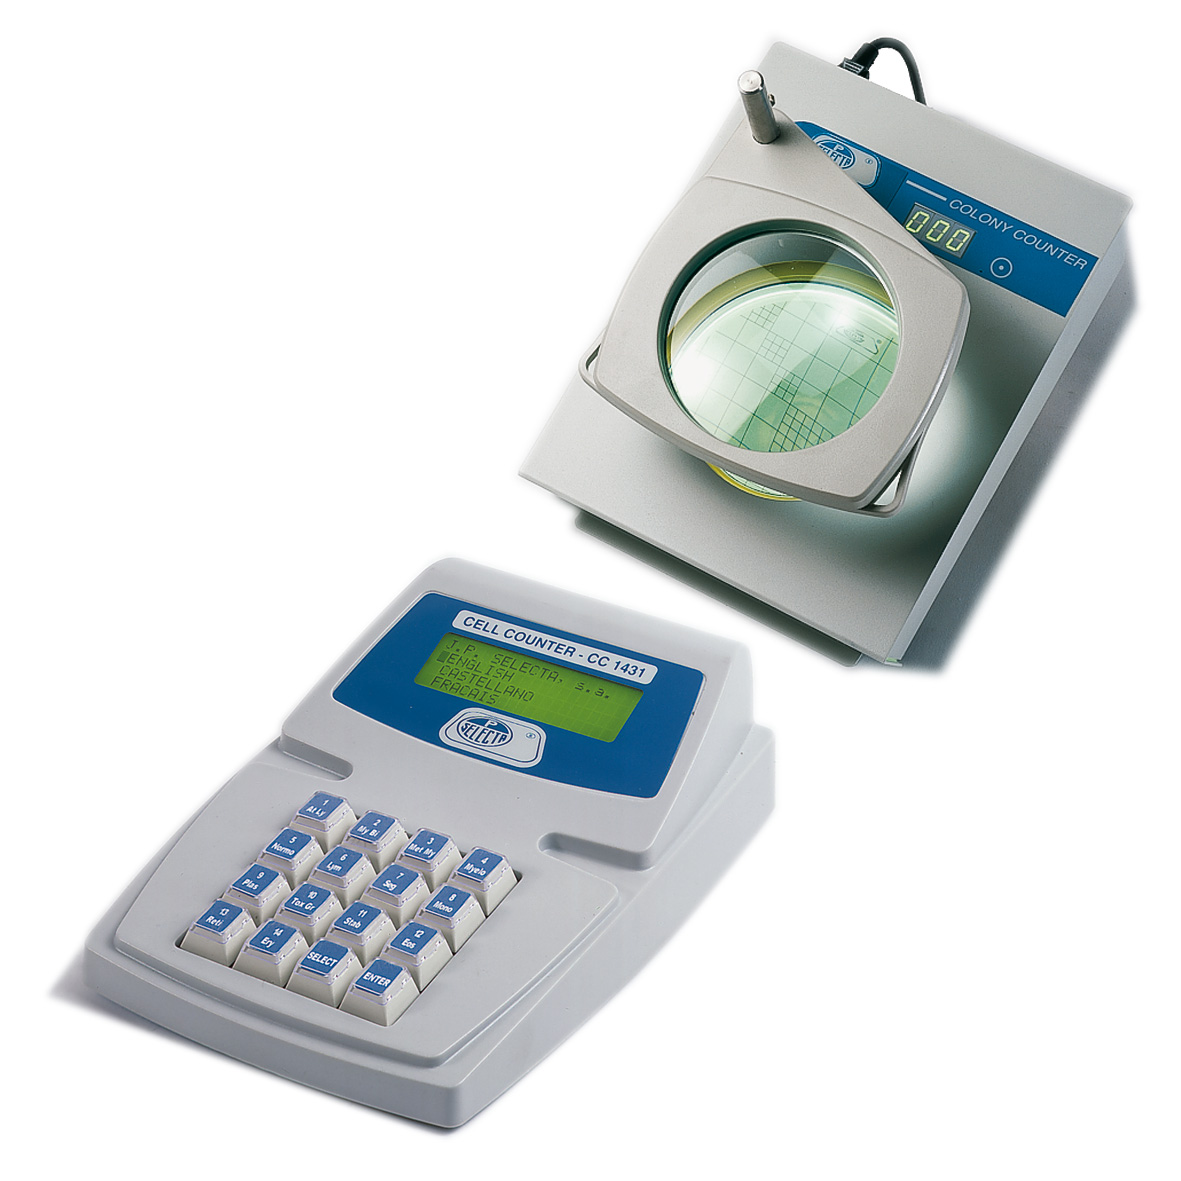 Digital blood cell counter,  colony counter